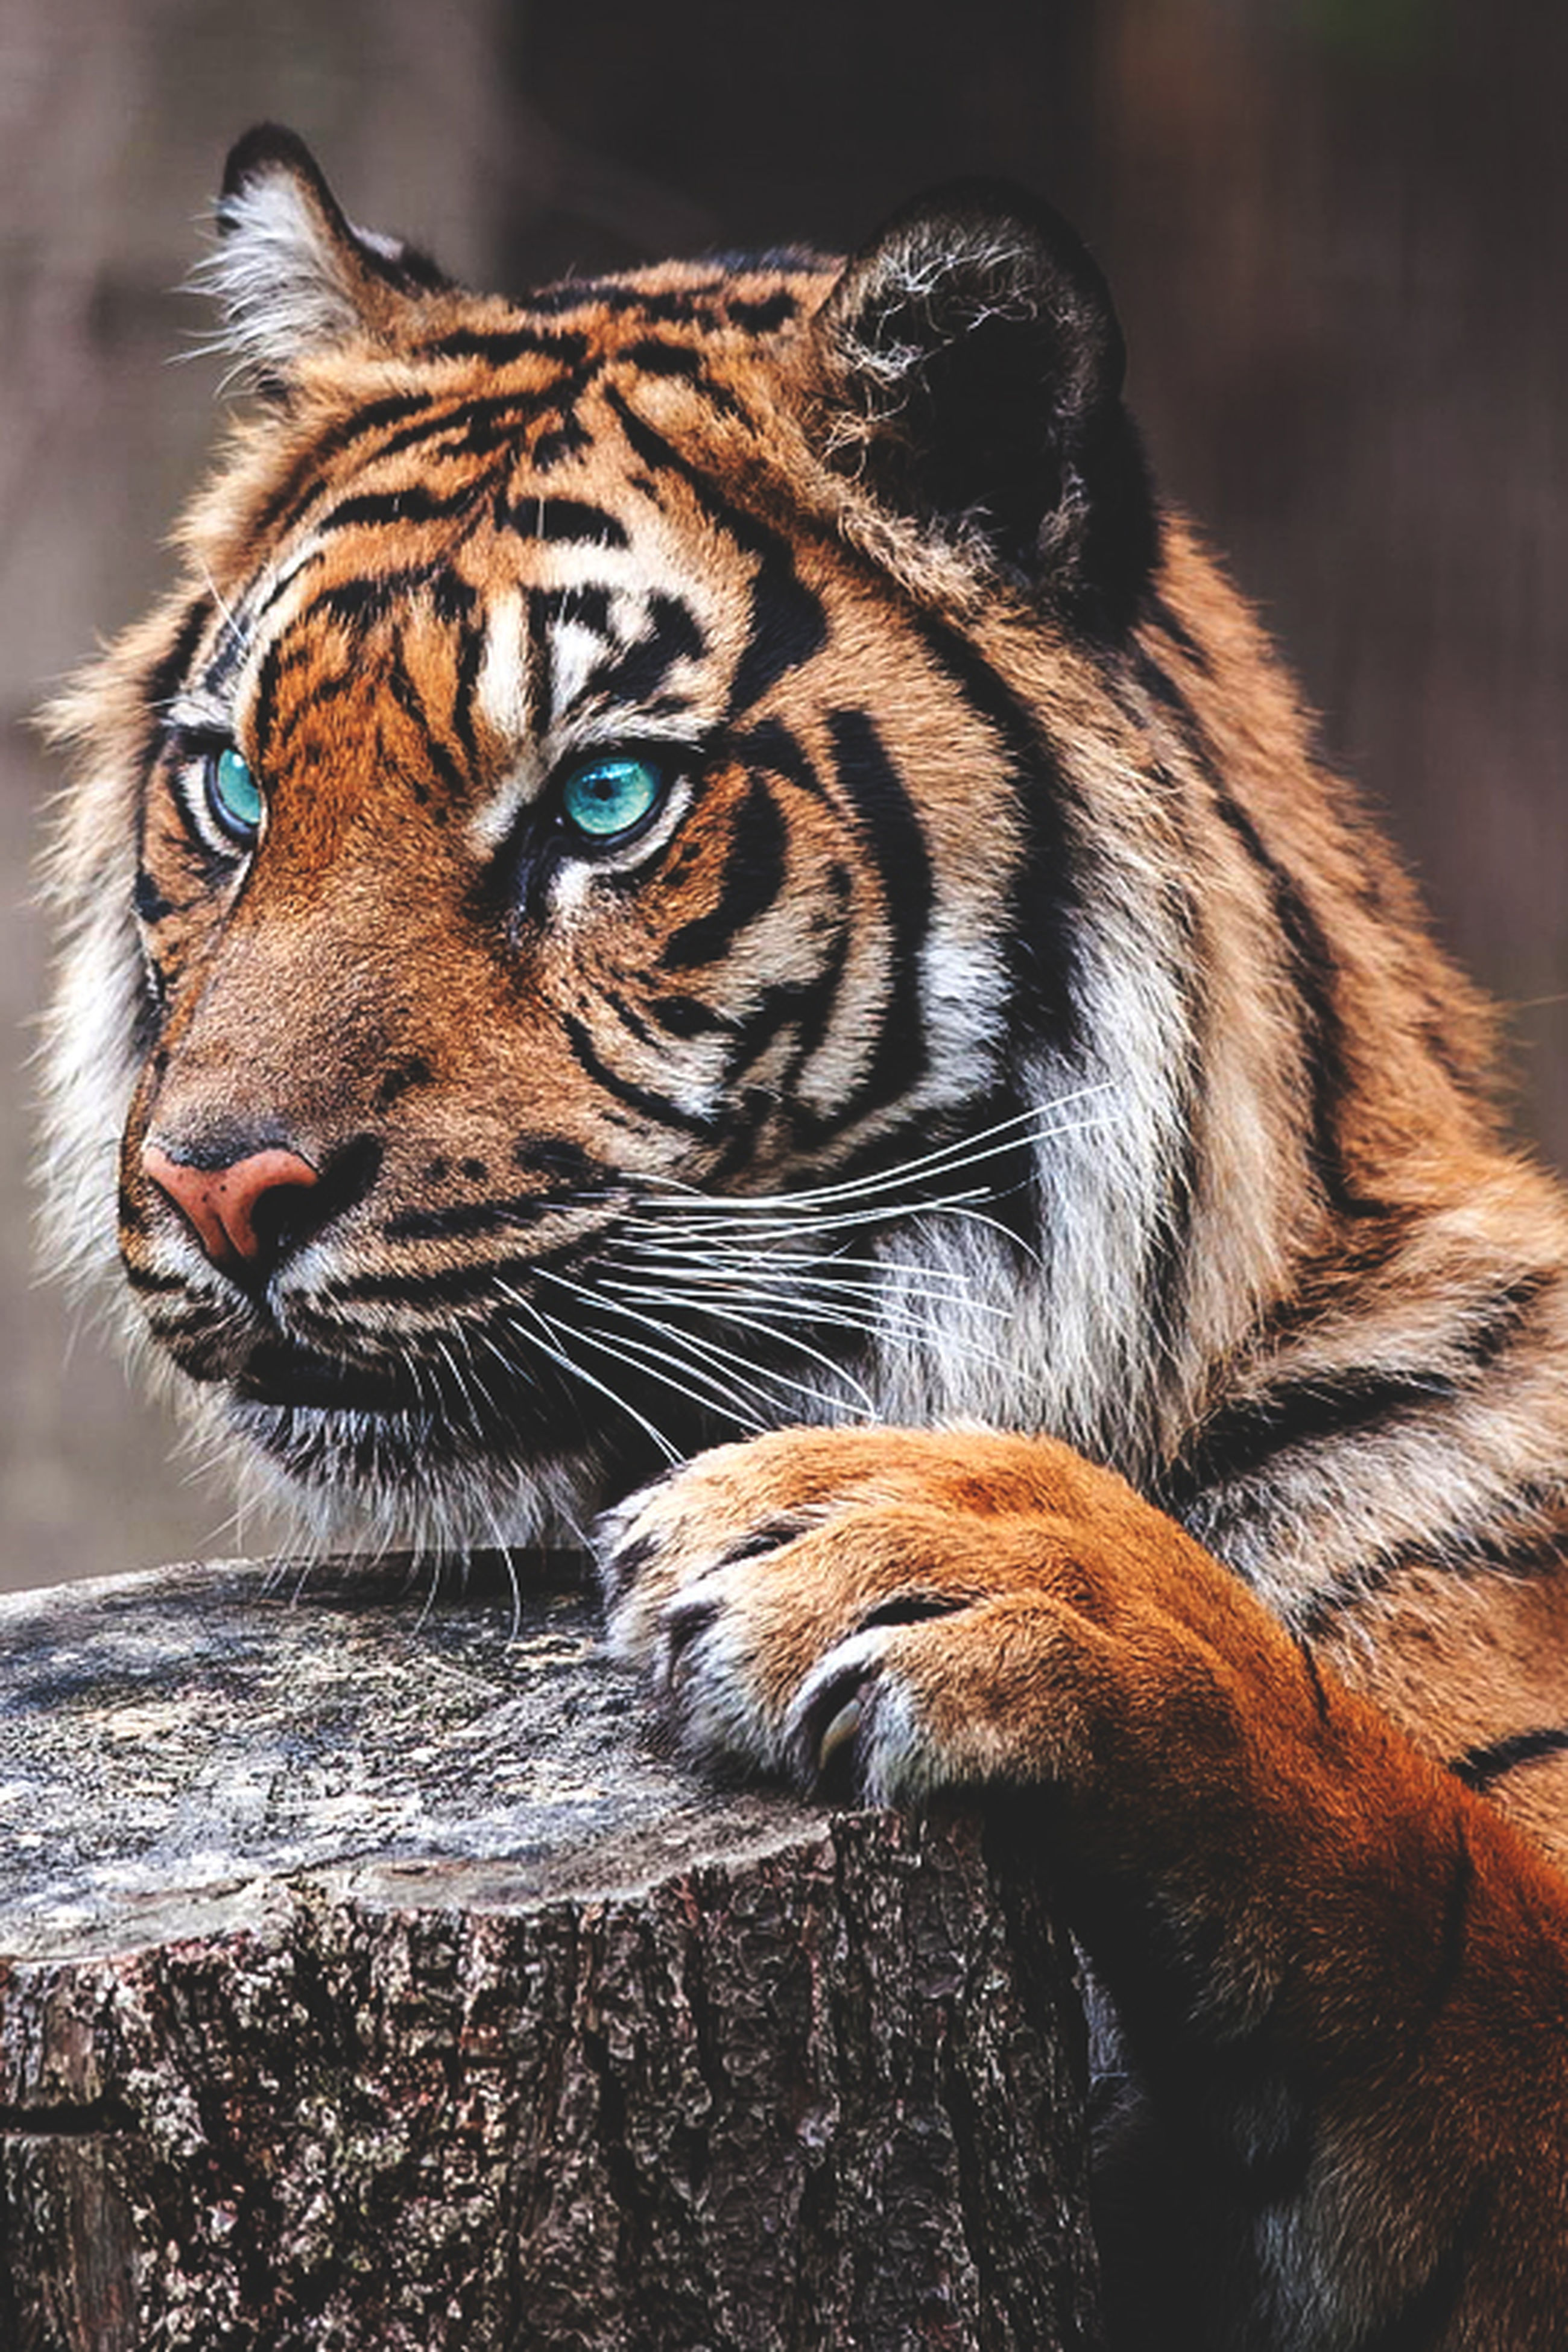 animal themes, one animal, mammal, animal head, close-up, animals in the wild, wildlife, tiger, focus on foreground, animal body part, animal markings, whisker, looking away, zoology, portrait, carnivora, no people, endangered species, outdoors, day